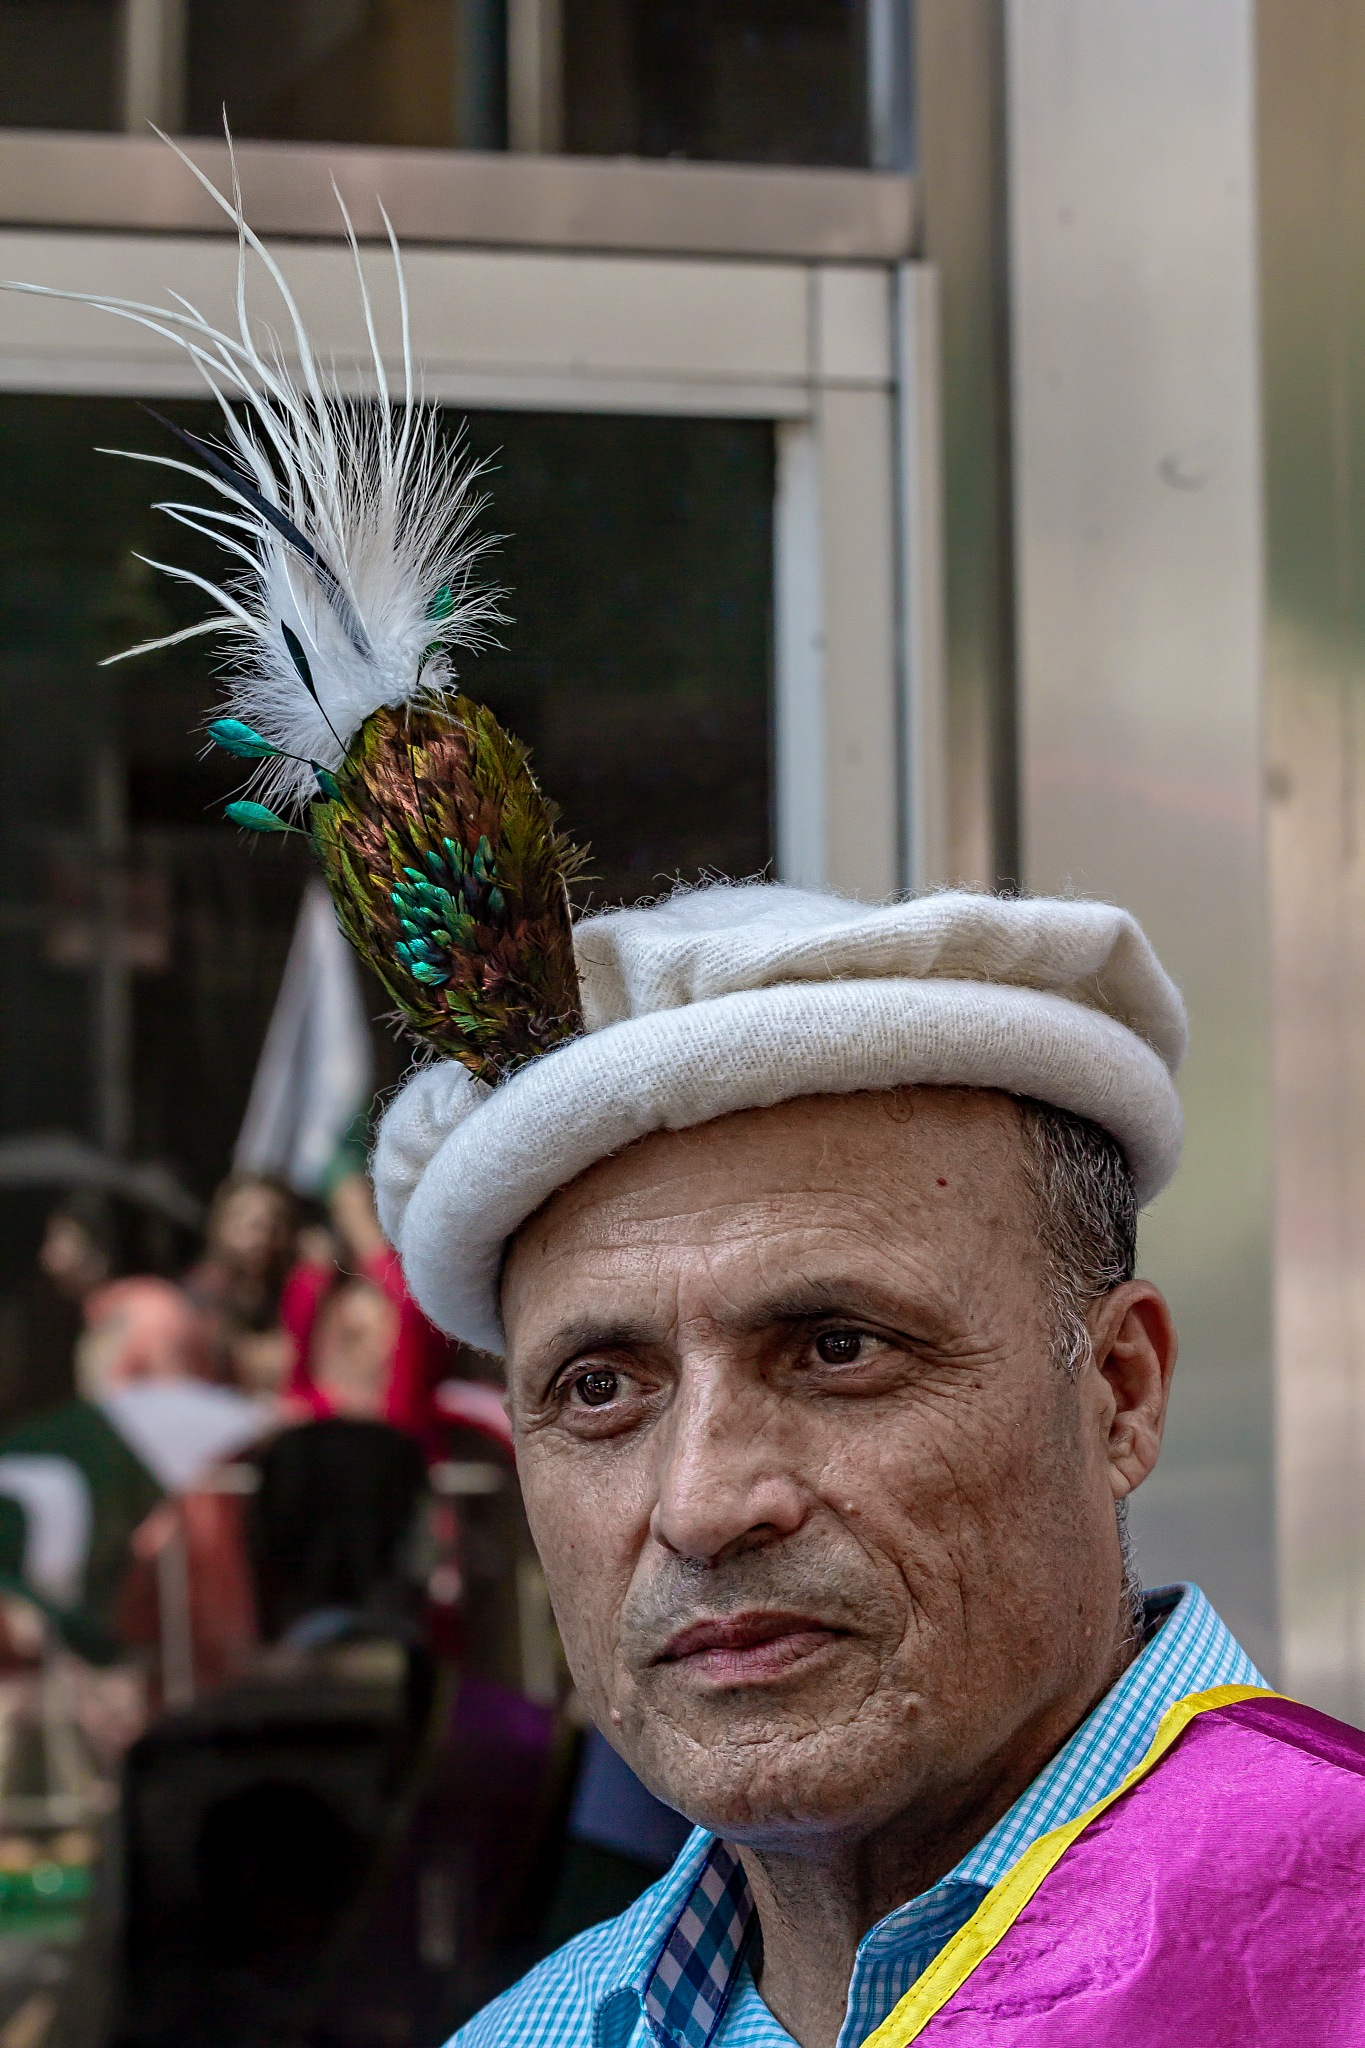 Pakistani Day NYC - man with feathered hat - Traditional Dress by robertullmann